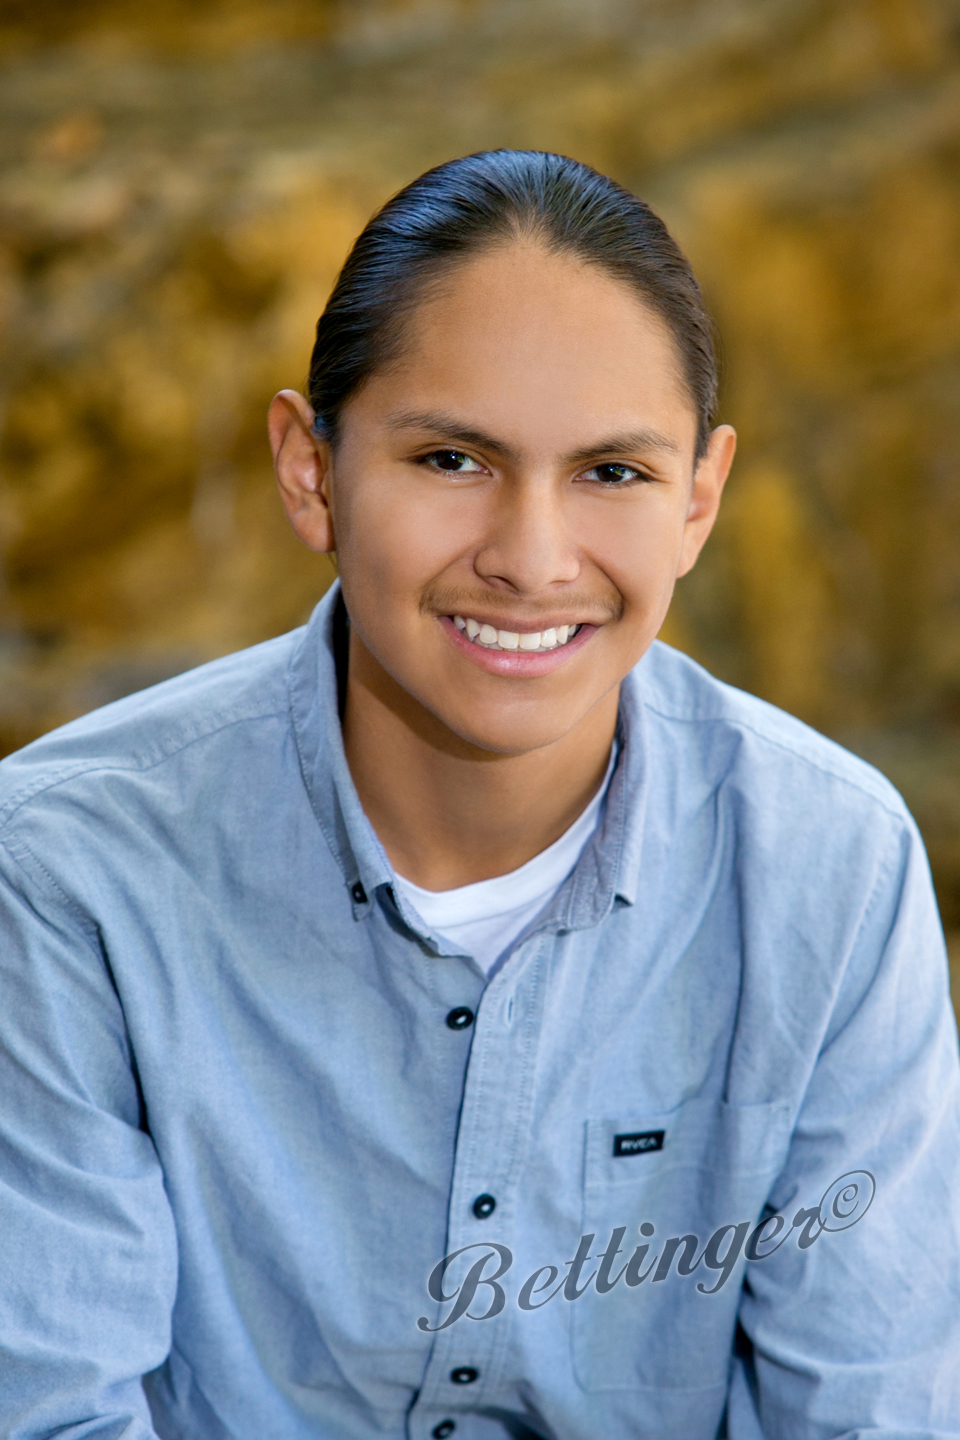 - Ben wants to be a Biomedical Engineer.  He also is Native American and speaks three languages.  That's awesome Ben!